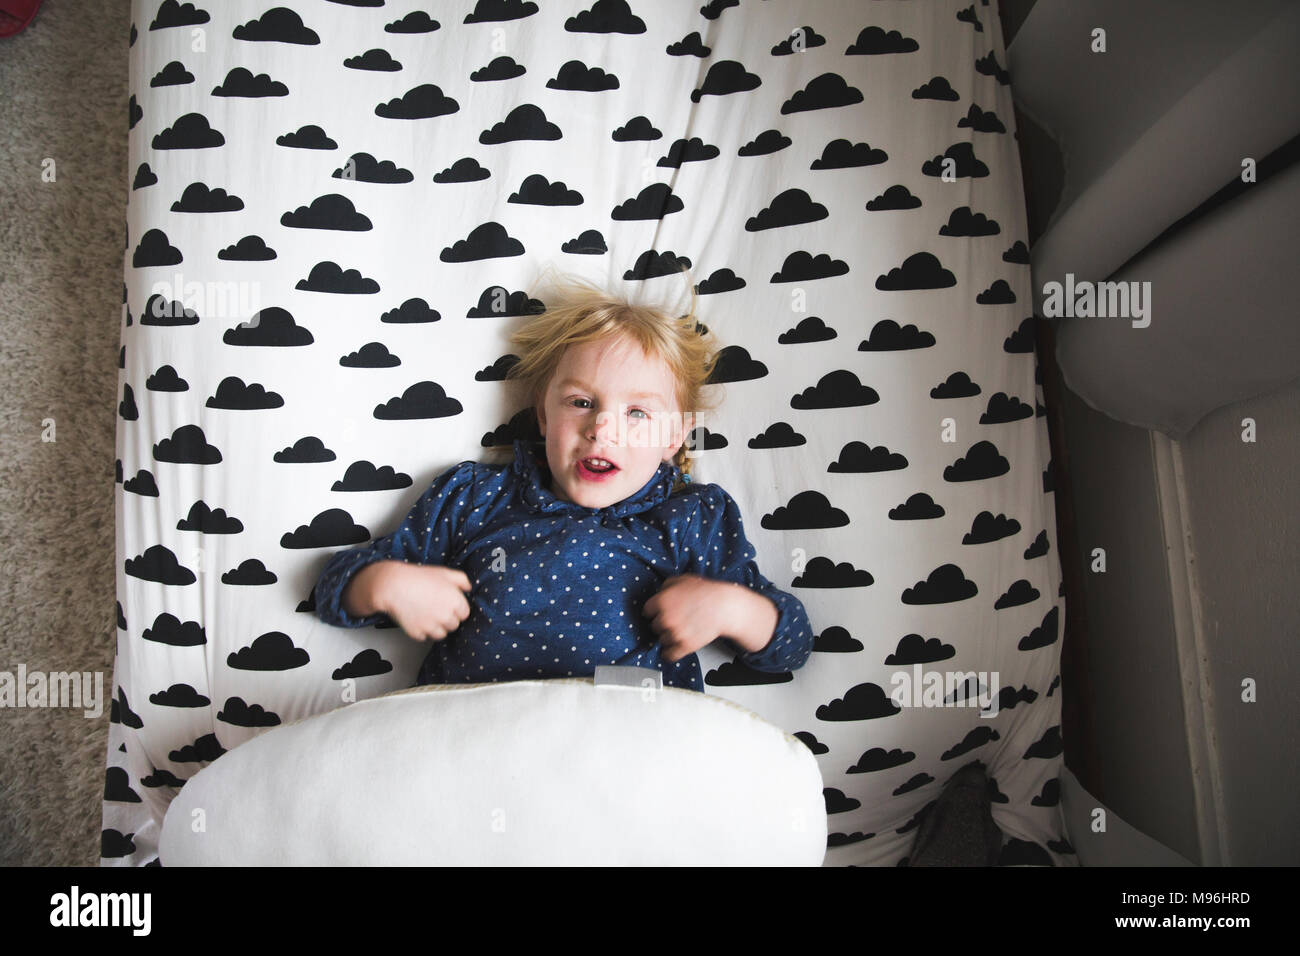 Girl laying on bed with cloud decal - Stock Image